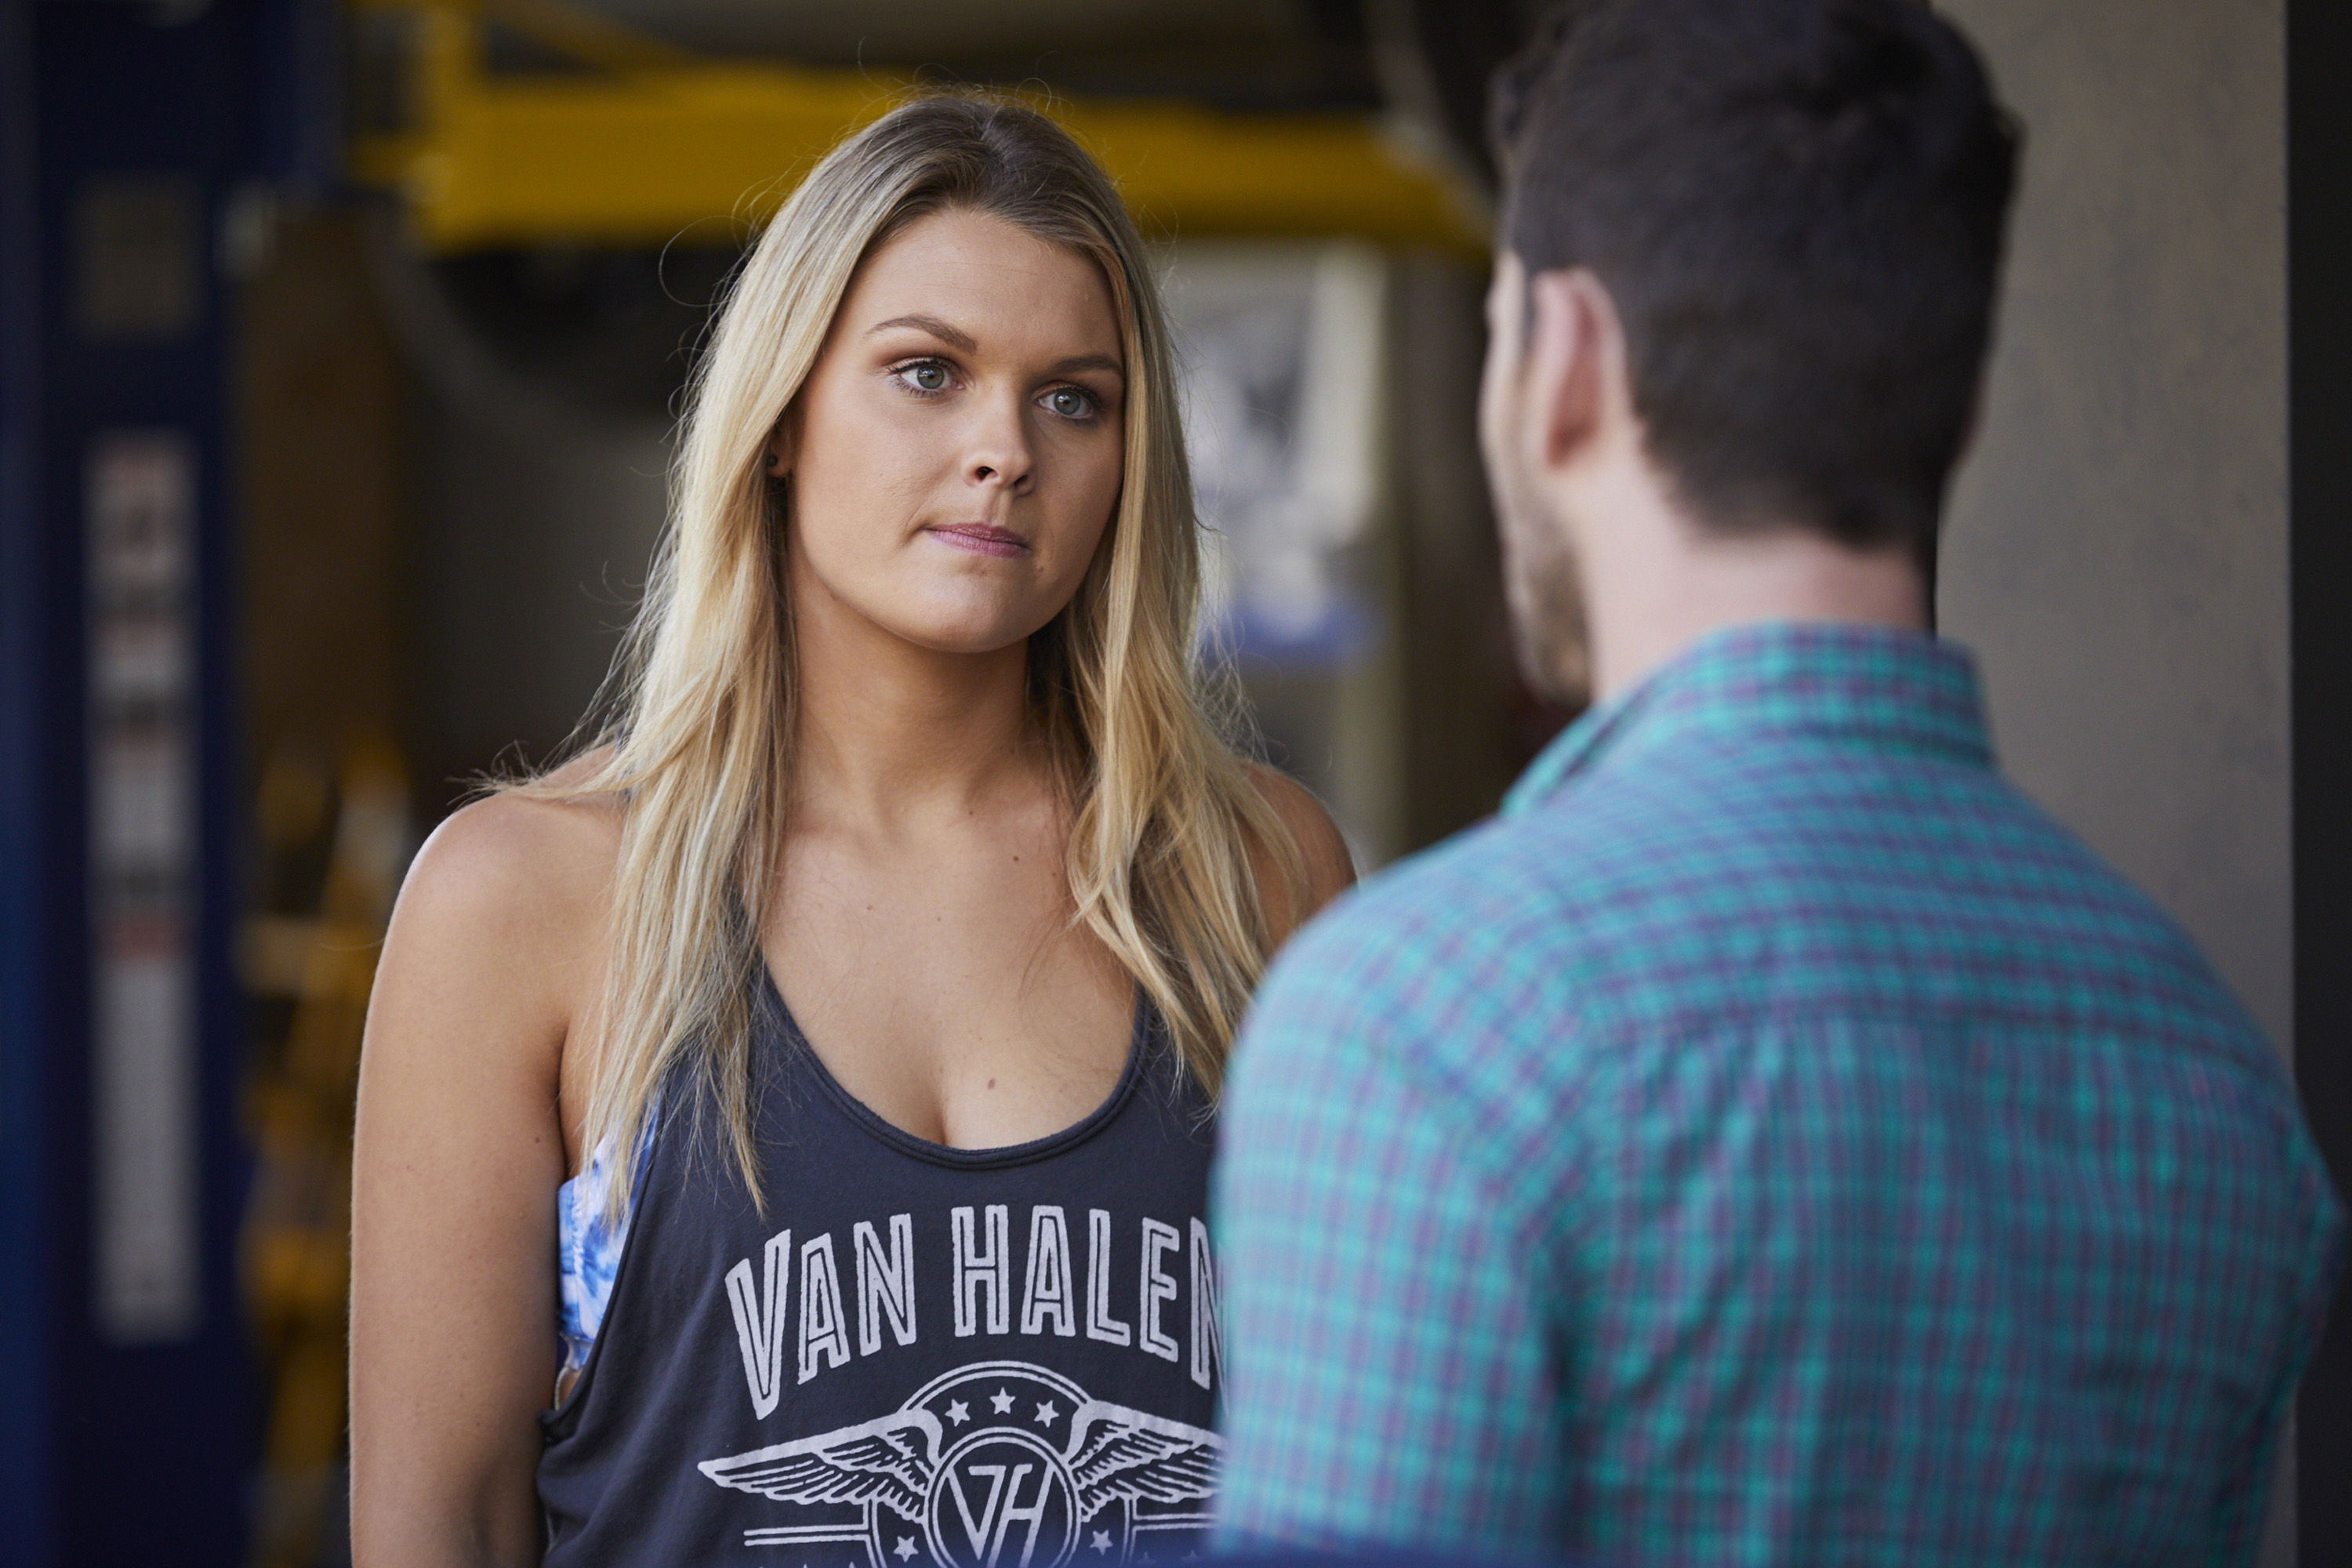 Home and Away spoilers: Ziggy punches Brody in shocking fight scenes